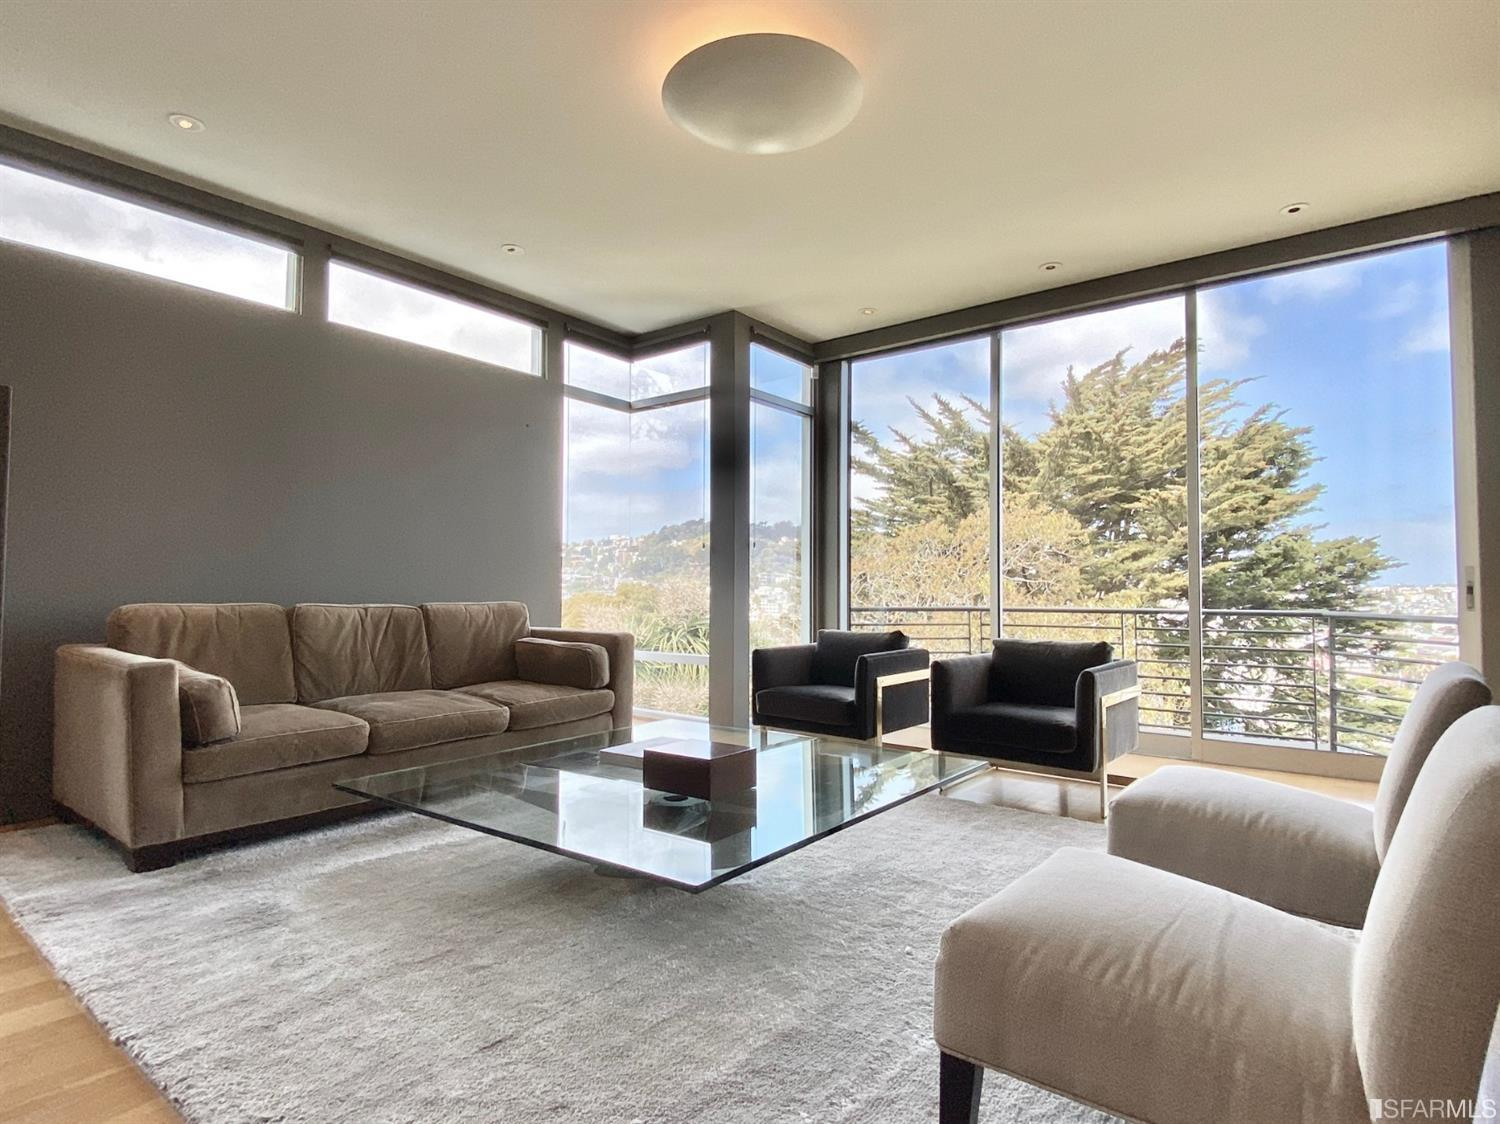 Family room with floor-to-ceiling windows, Fleetwood telescoping door to a deck, and expansive views of downtown and sweeping no